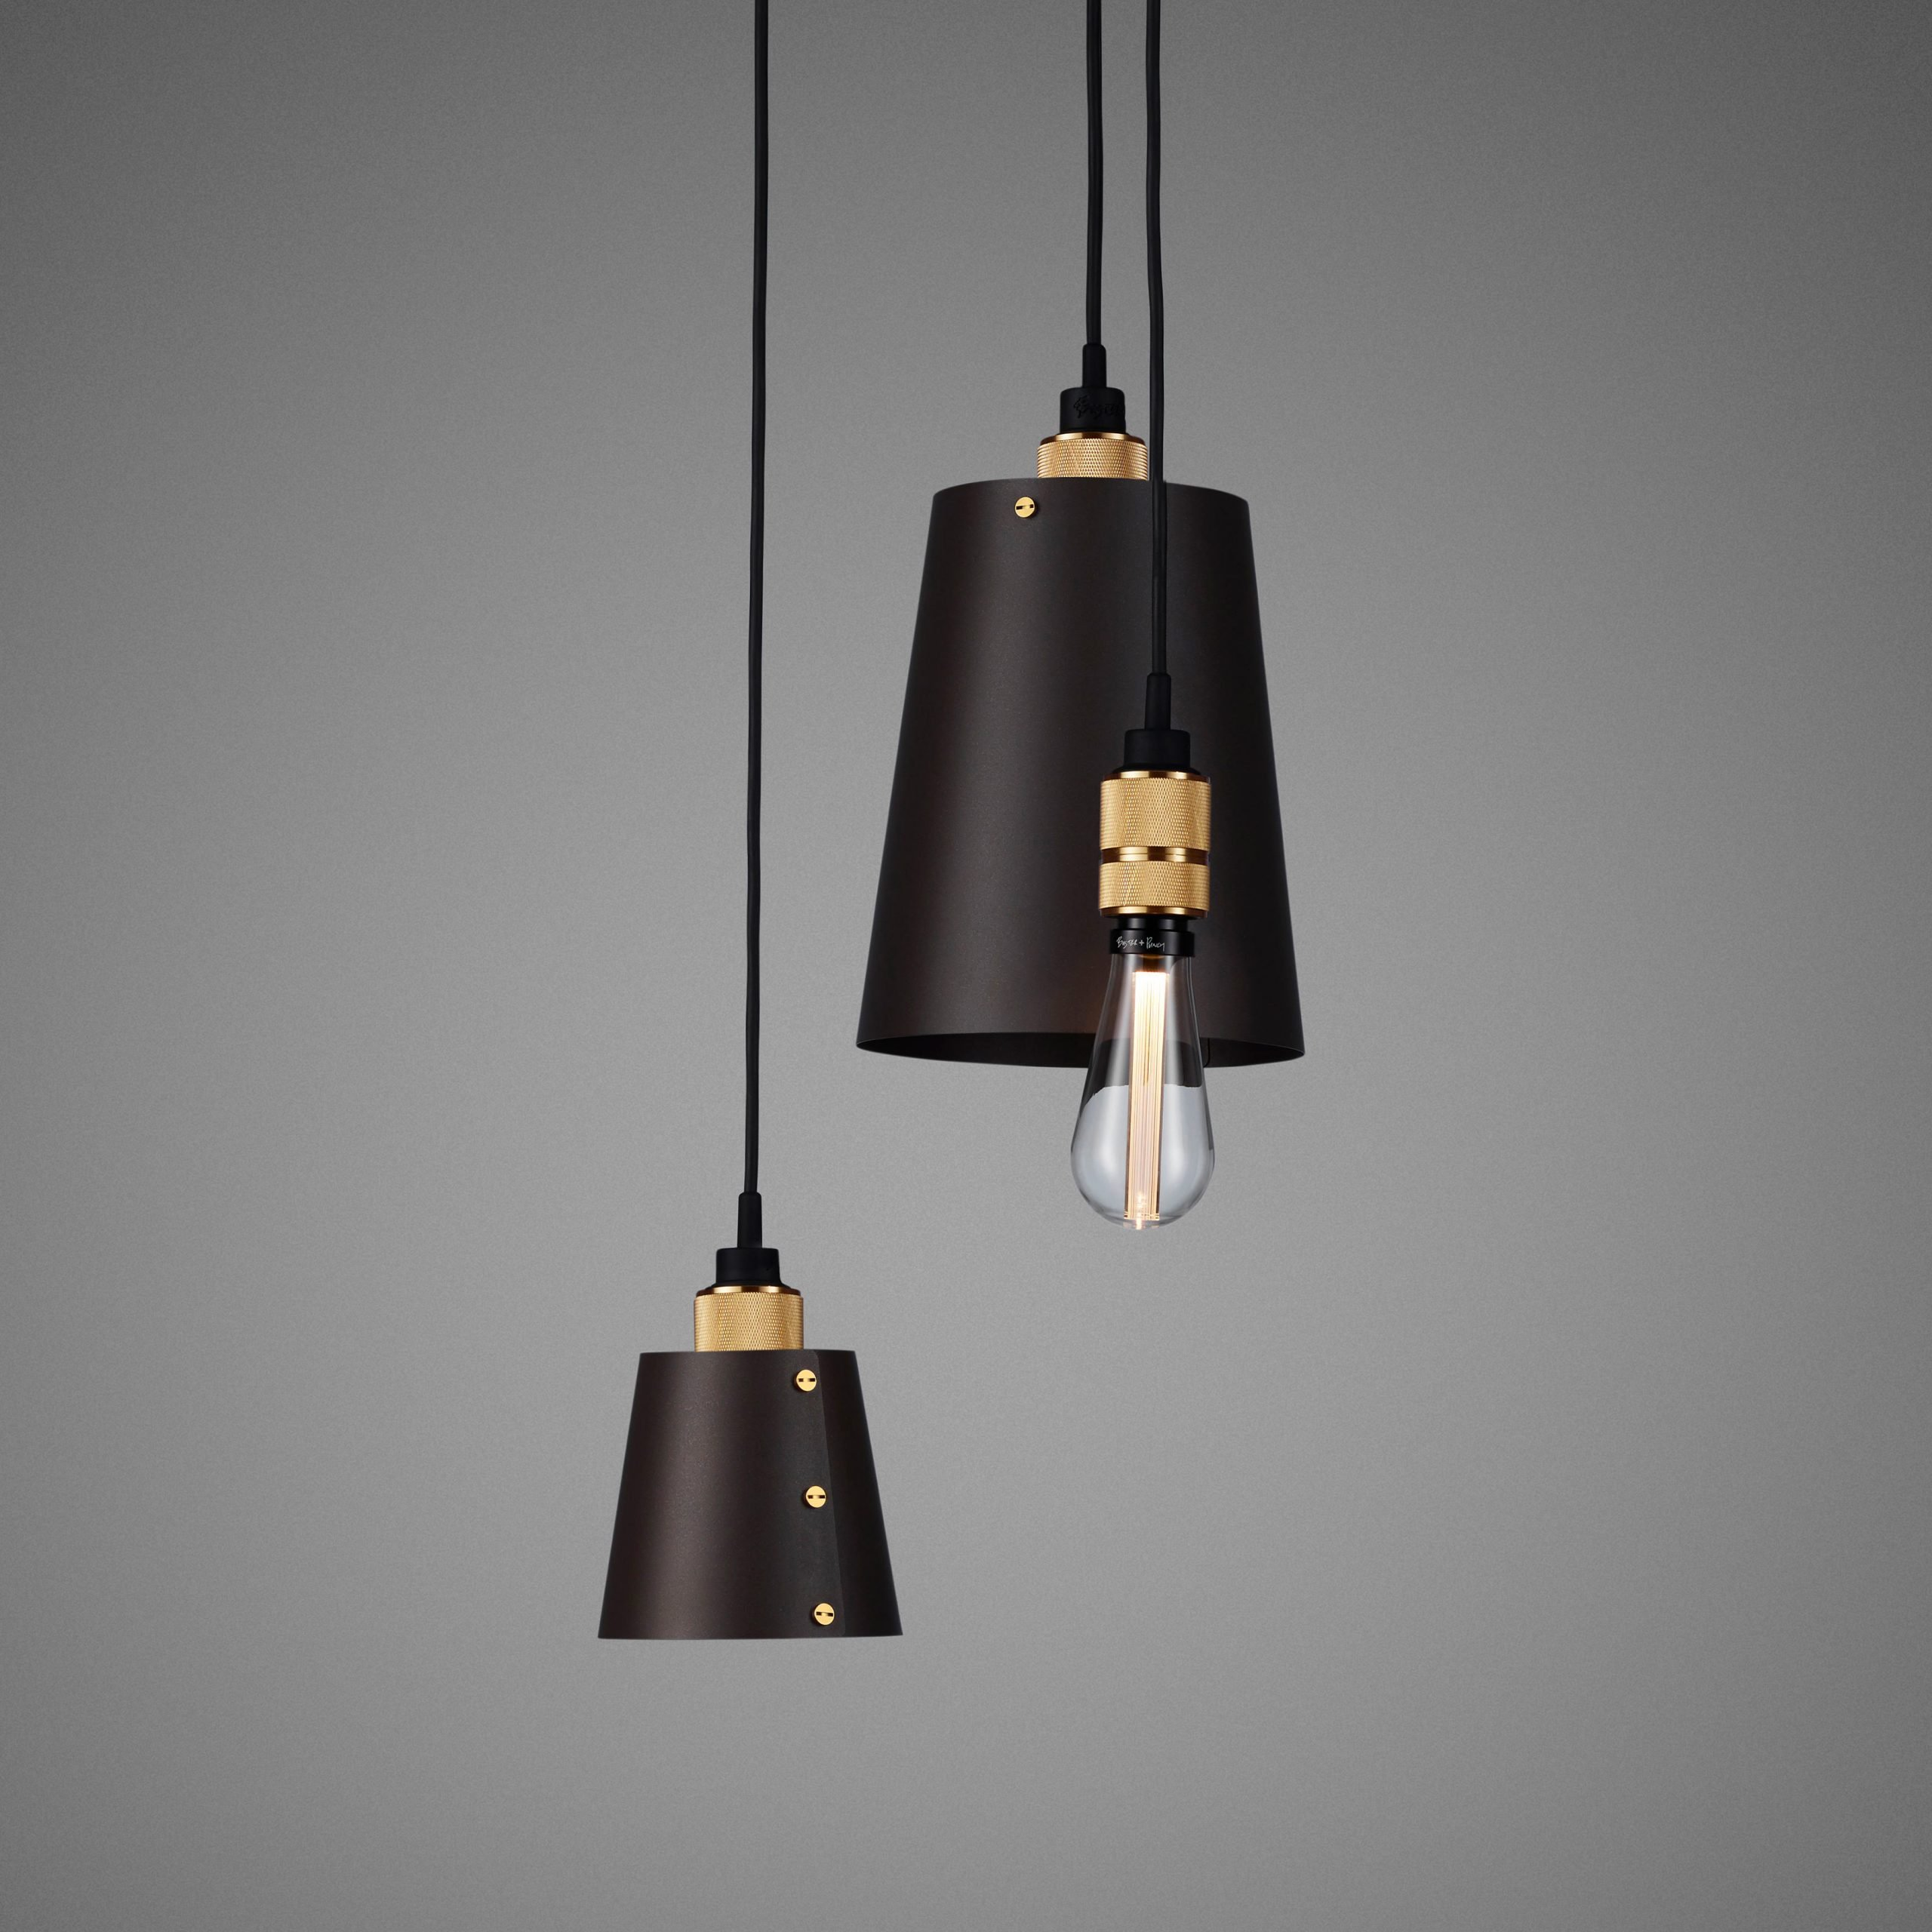 2.Buster+Punch_Hooked_3.0_Mix_Graphite_Brass_Crystal_Bulb_2